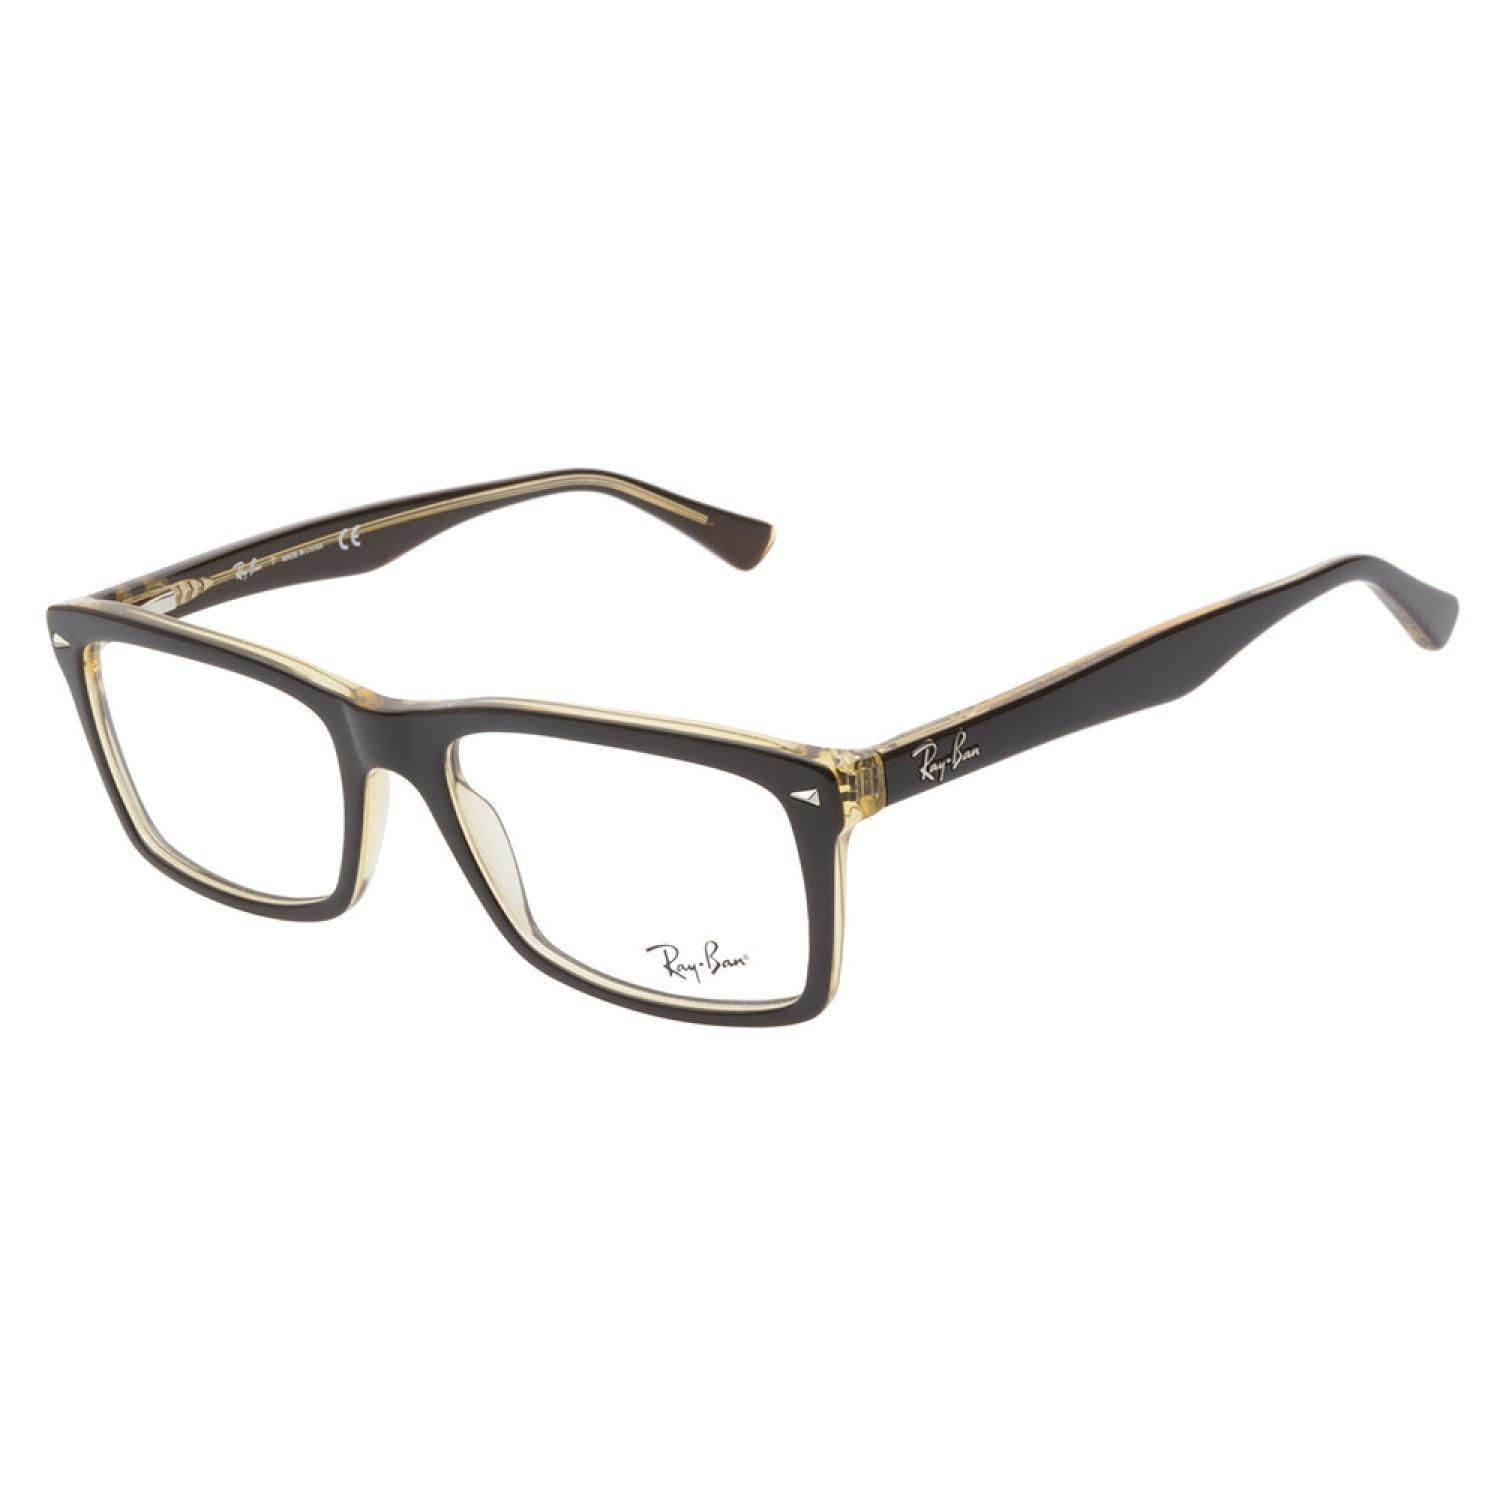 Ray-Ban 5287 5373 Brown Yellow Prescription Eyeglasses ...